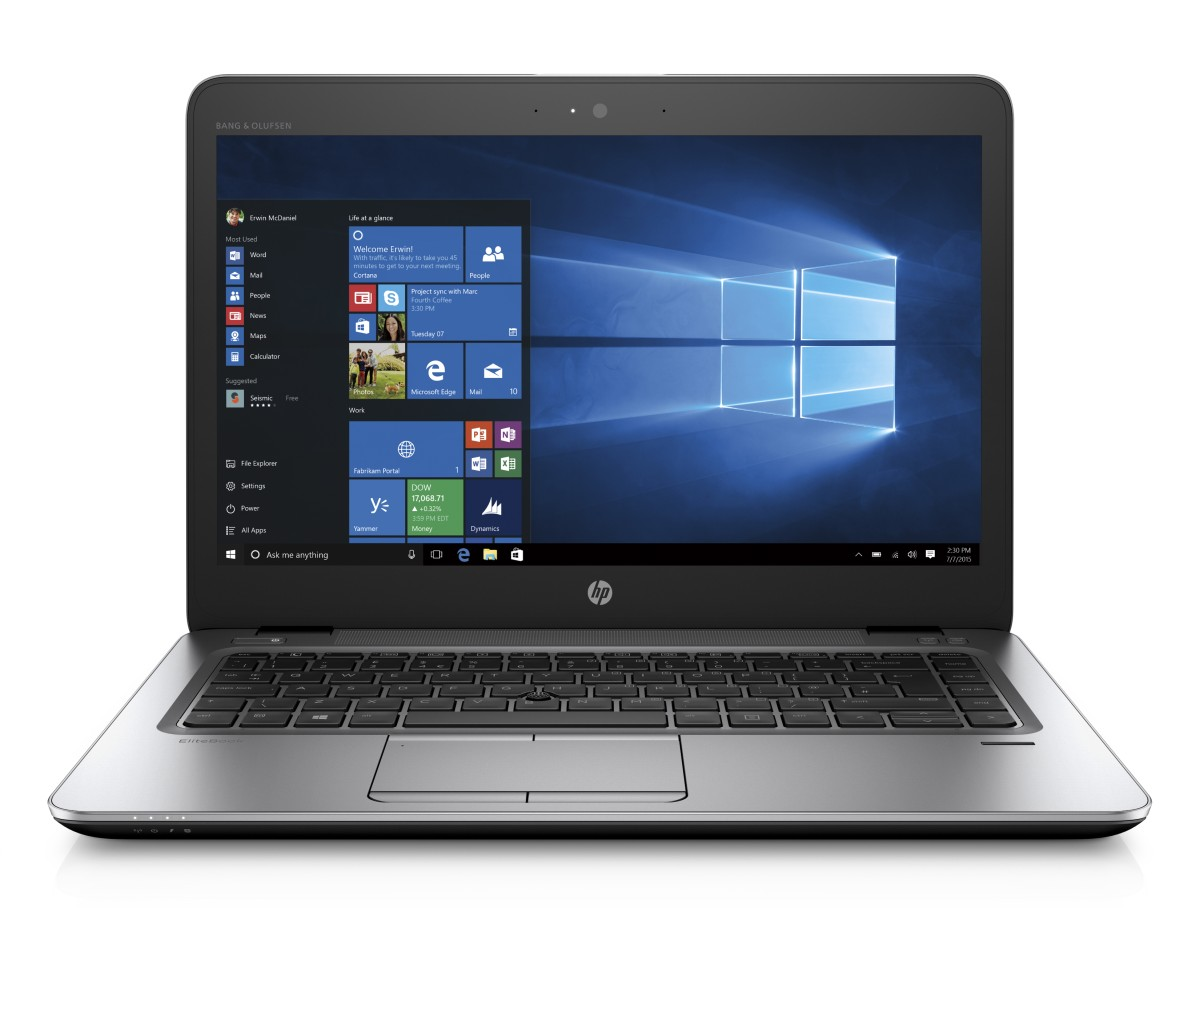 "HP EliteBook 745 G4, A12-9800B, 14"" FHD, 8GB, 256GB SSD, ac, BT, FpR, backlit kbd, W10 Pro"